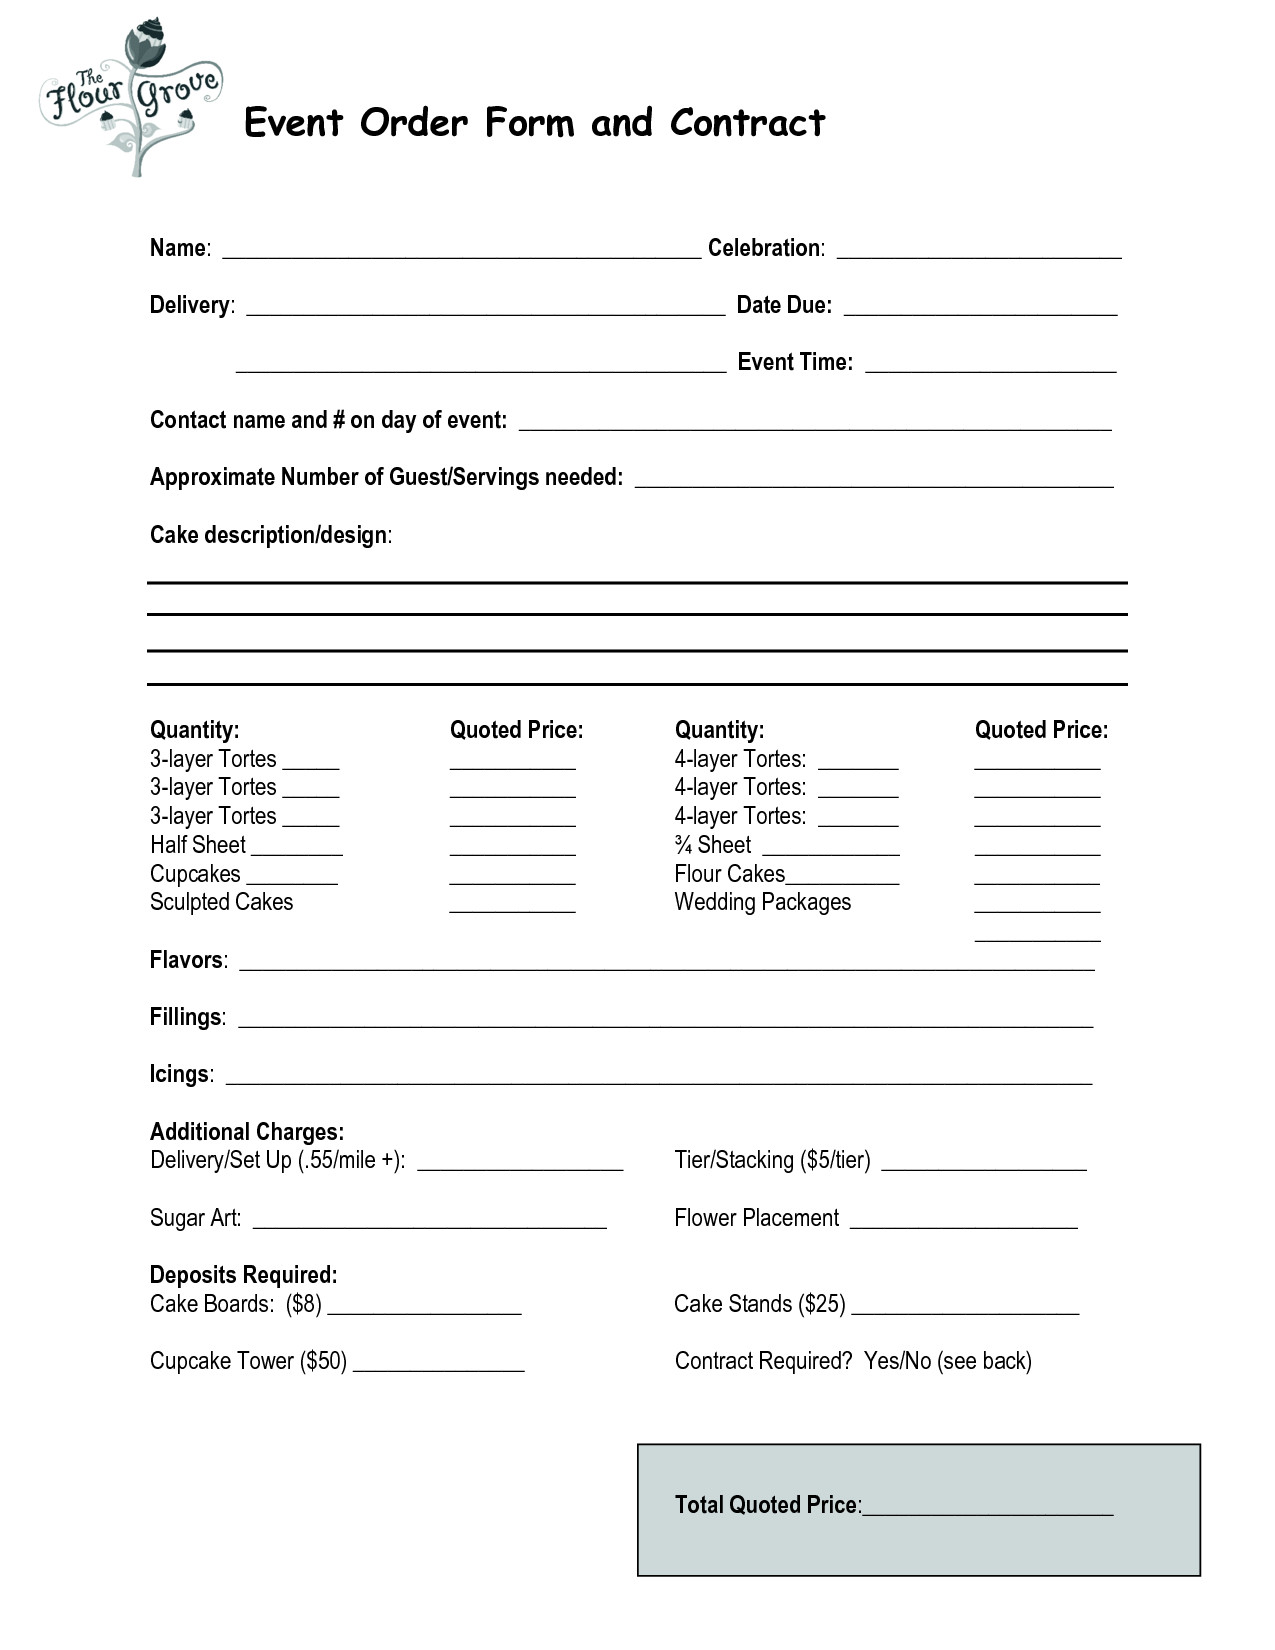 Cake order forms Templates Cake order Contract event order form and Contract